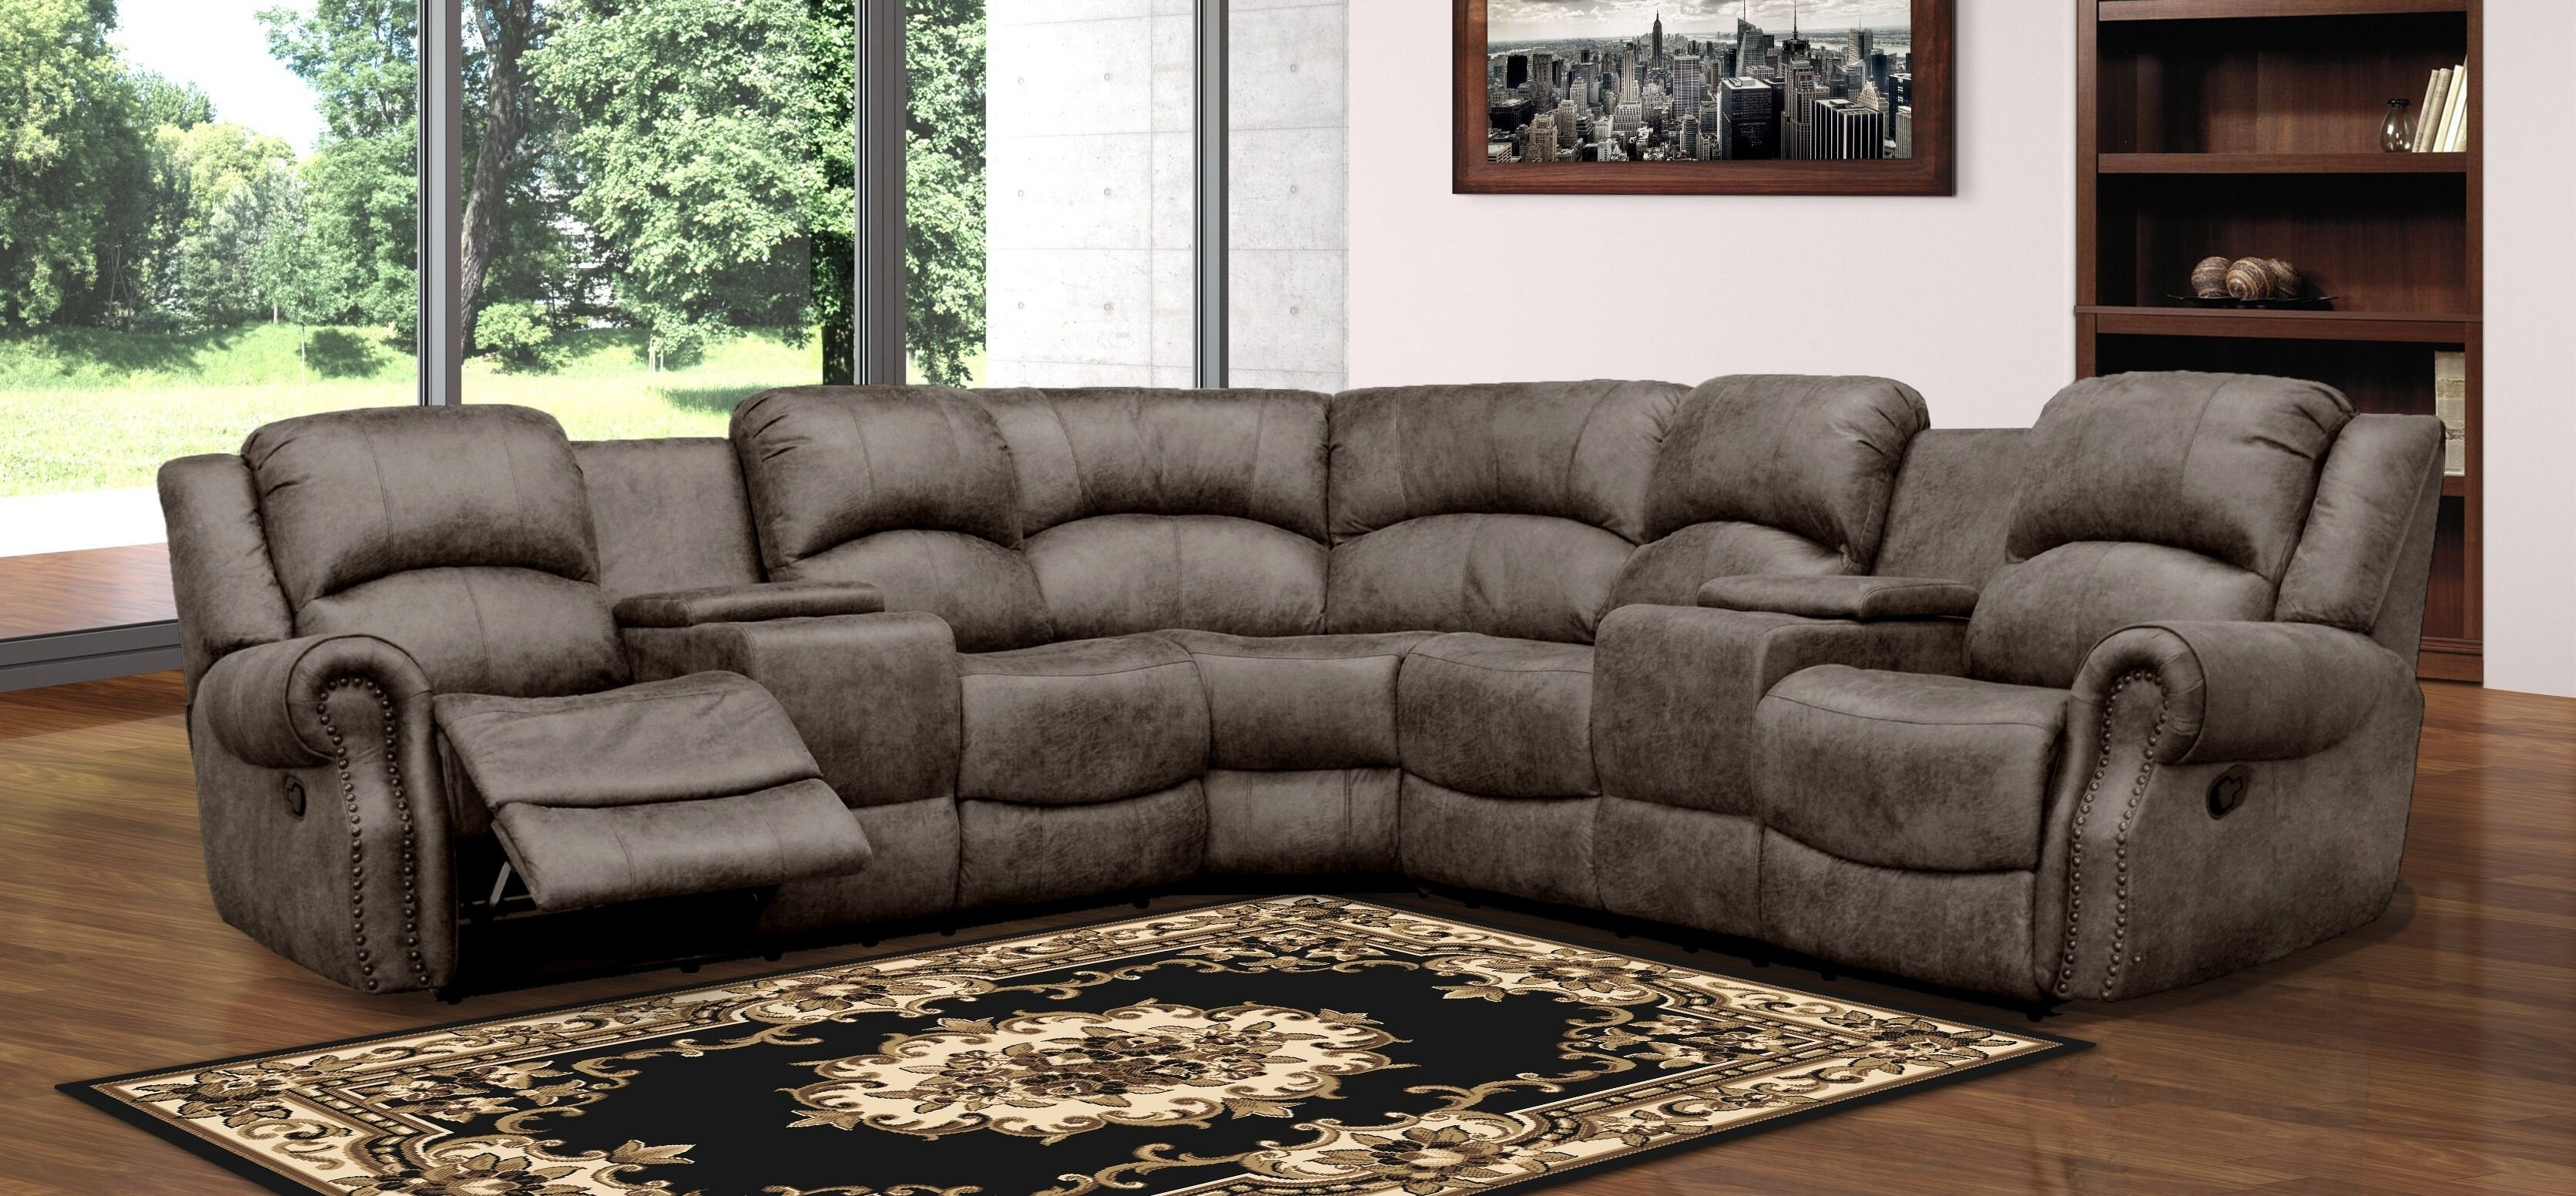 Furniture Clearance Center | Motion Groups Pertaining To Waylon 3 Piece Power Reclining Sectionals (View 15 of 25)